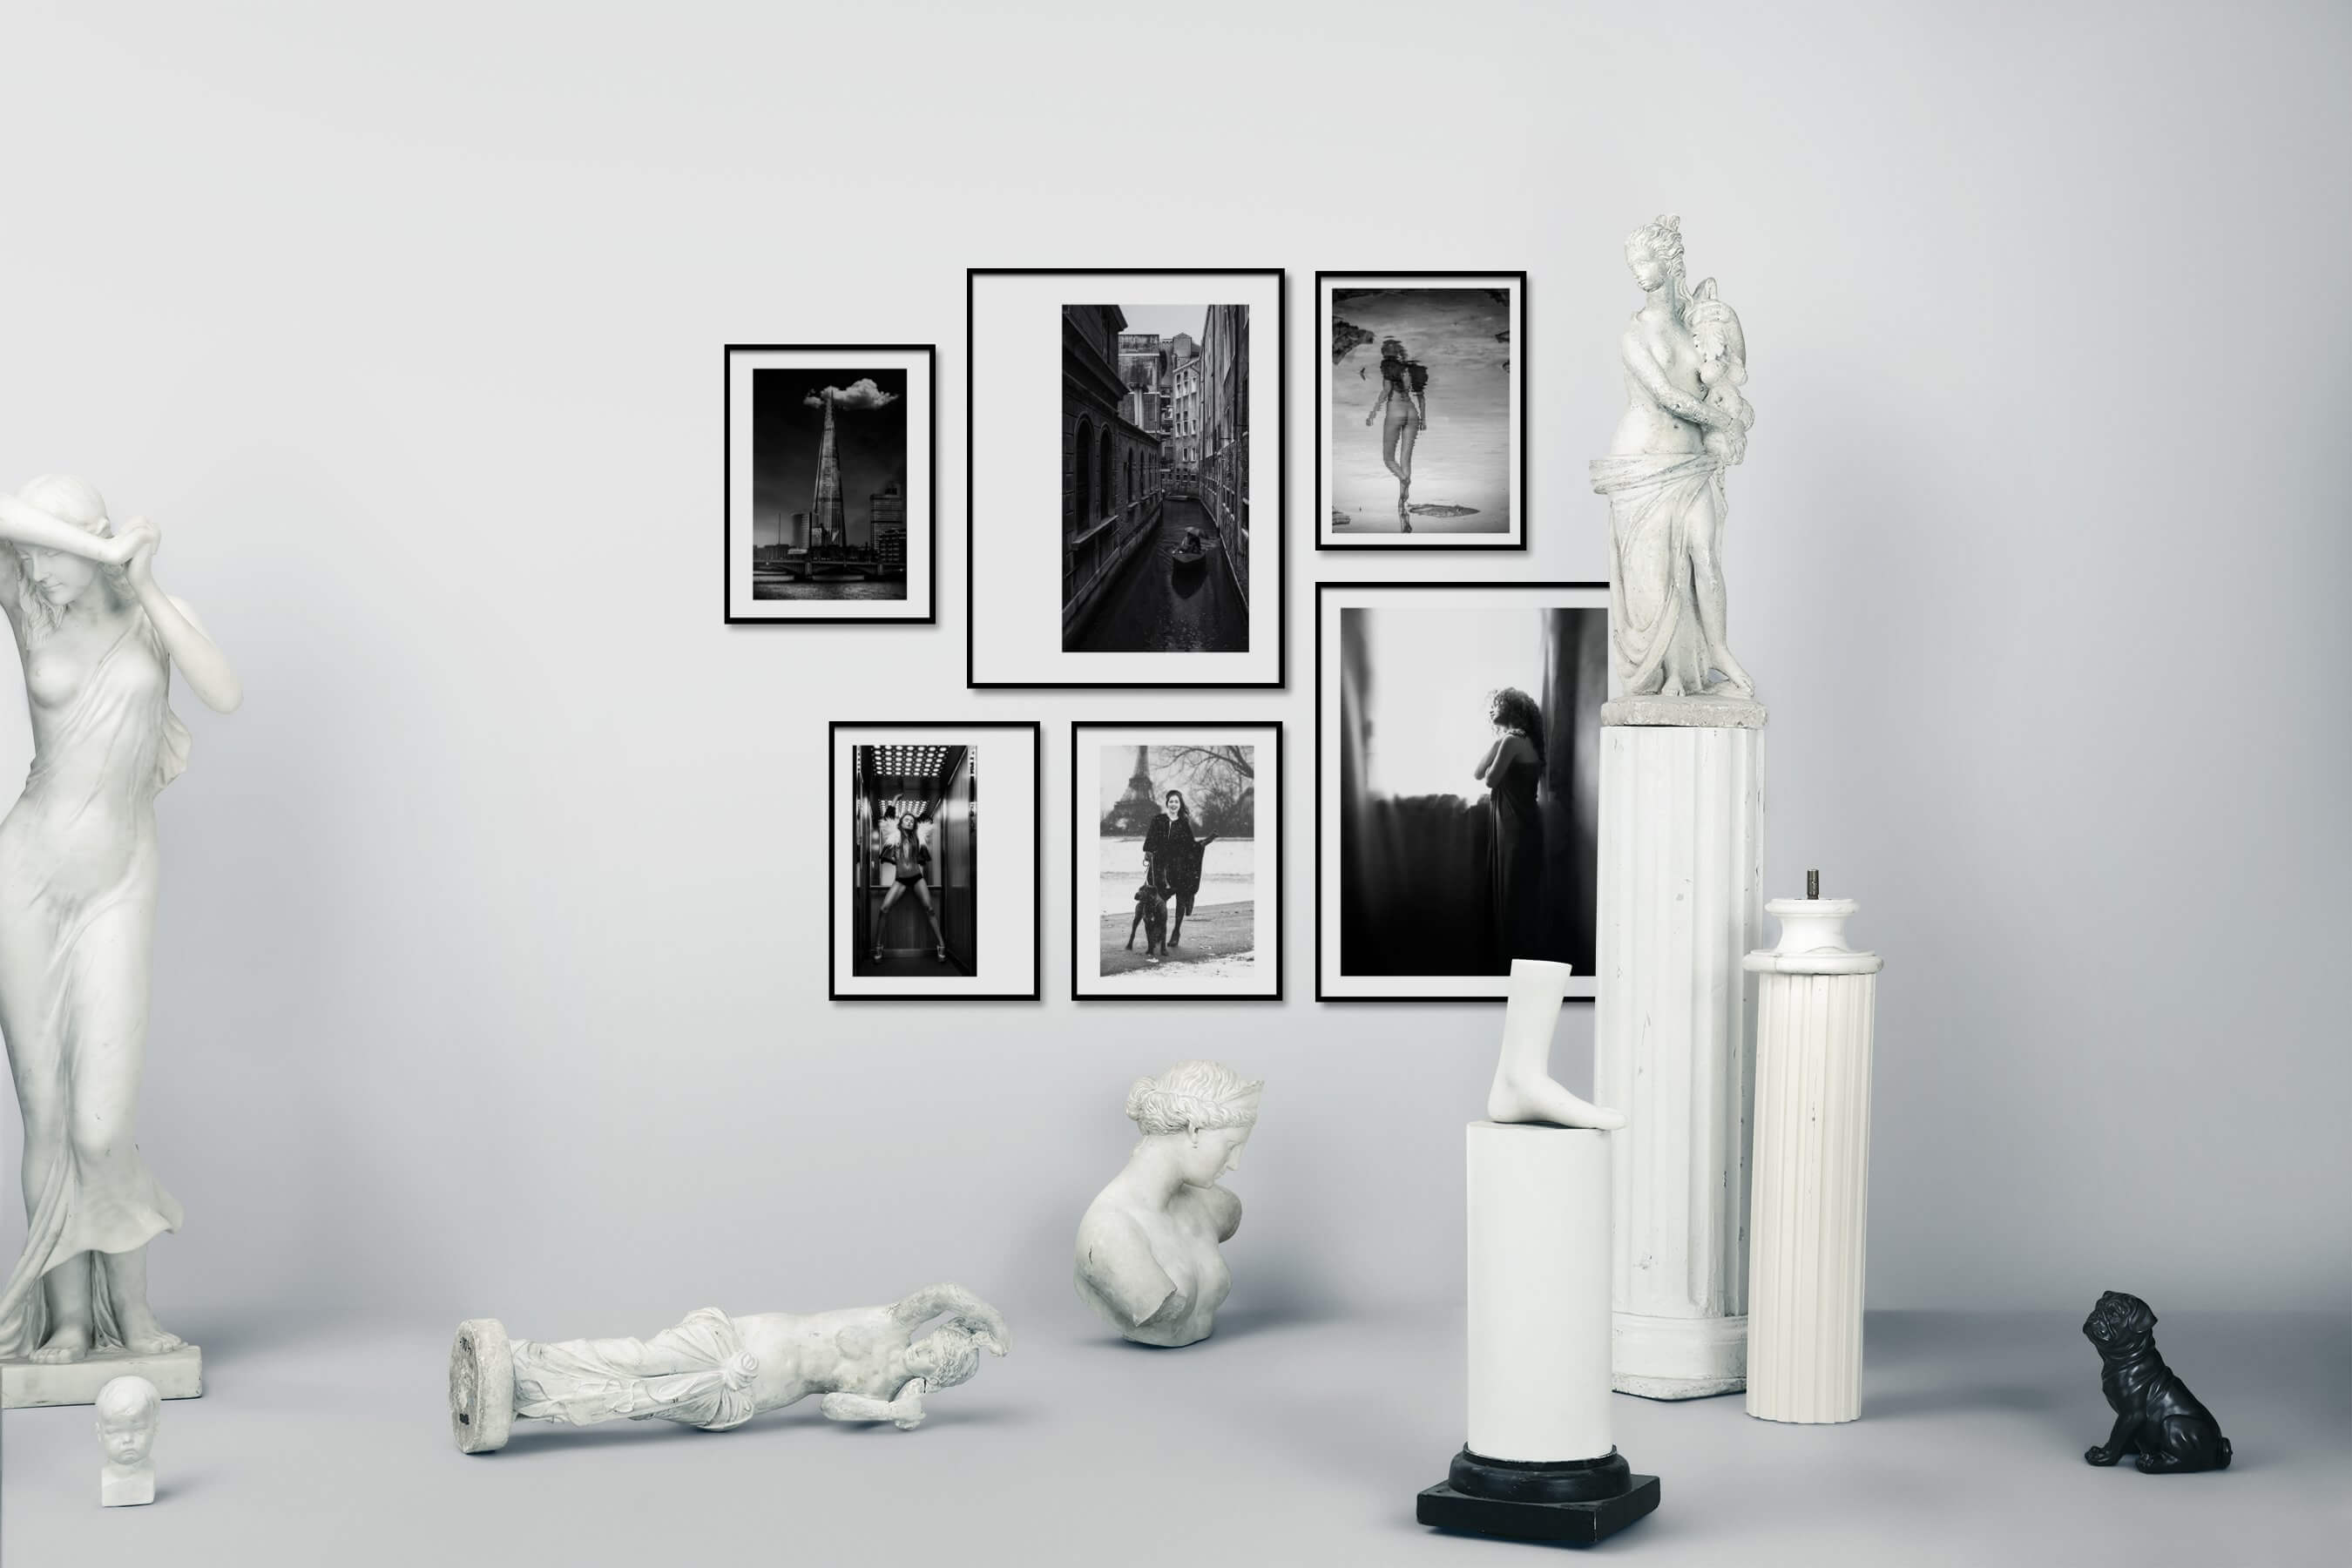 Gallery wall idea with six framed pictures arranged on a wall depicting Black & White, For the Moderate, City Life, Fashion & Beauty, Bold, Animals, and For the Minimalist